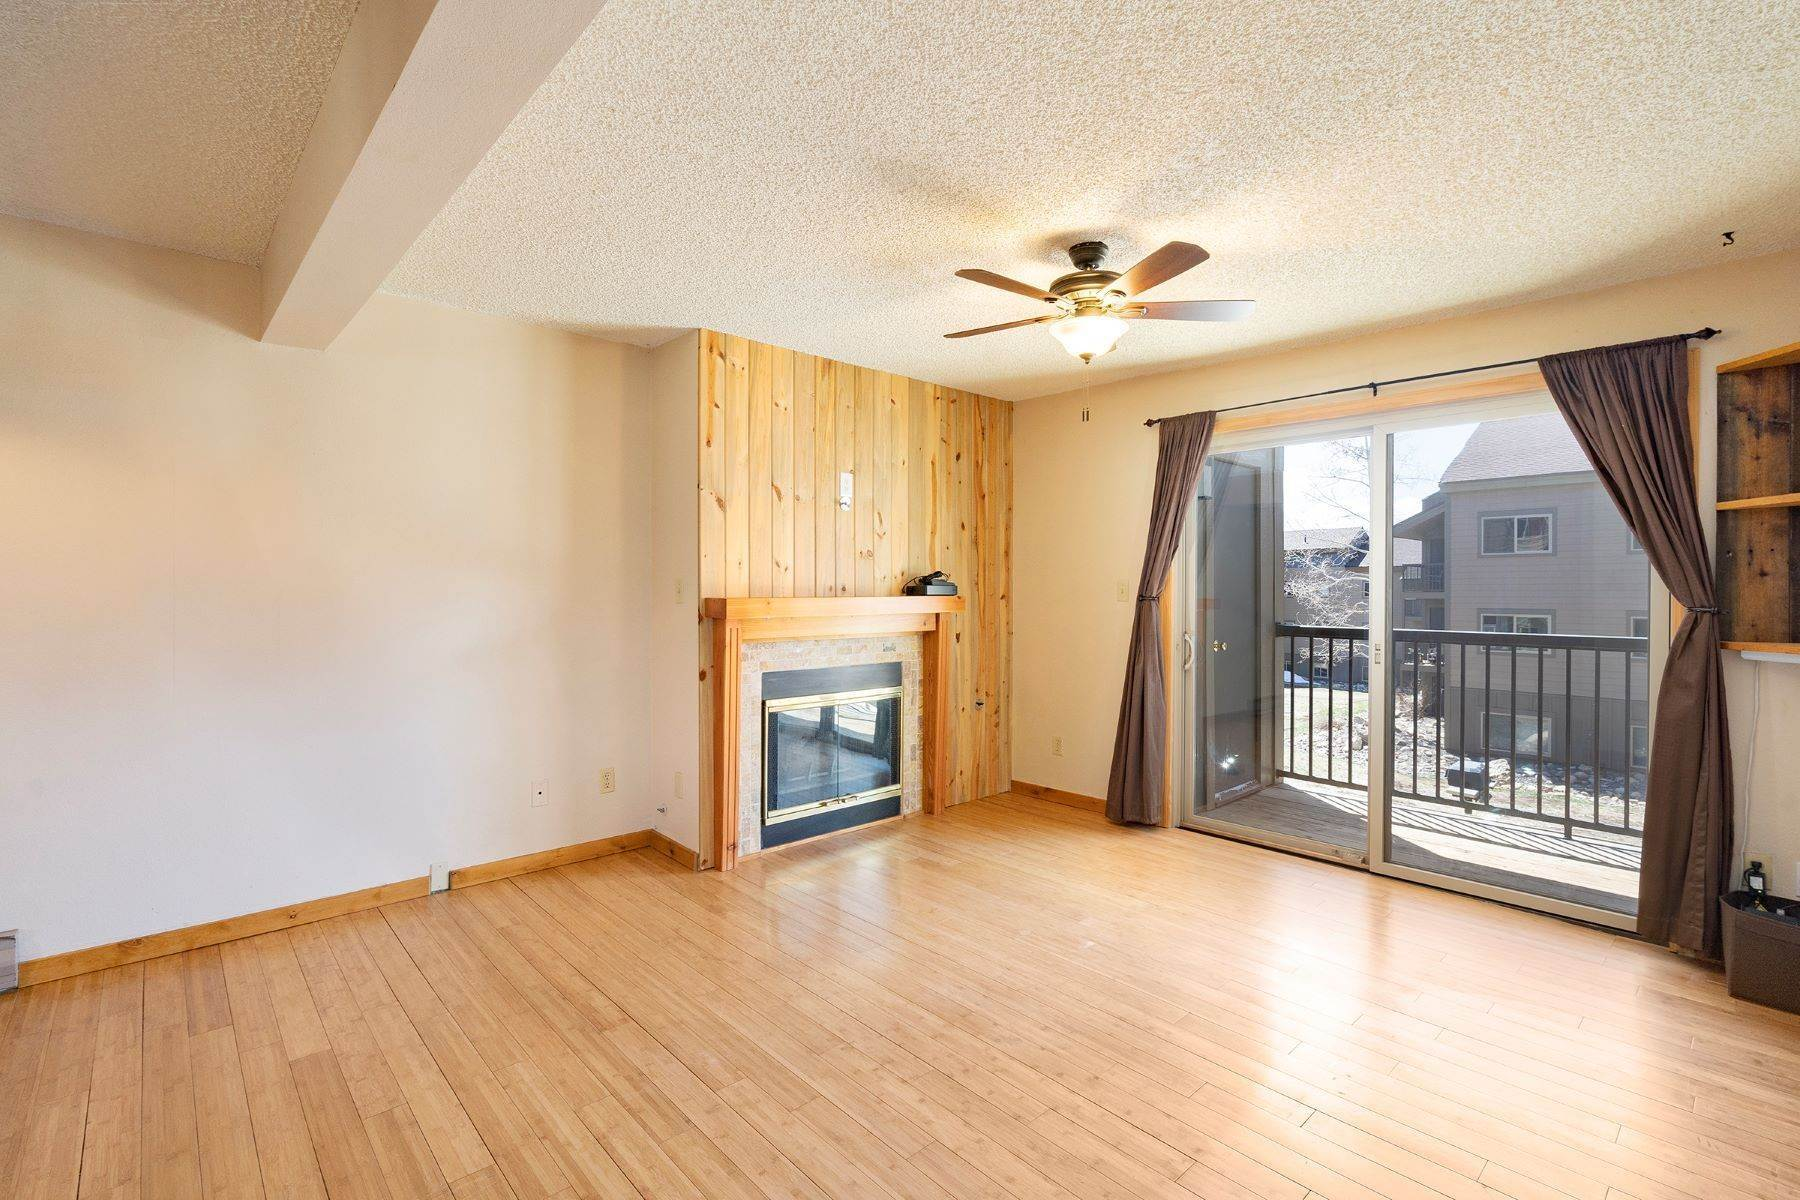 Condominiums for Sale at Updated Shadow Run Condo 1565 Shadow Run Frontage Unit #204 Steamboat Springs, Colorado 80487 United States